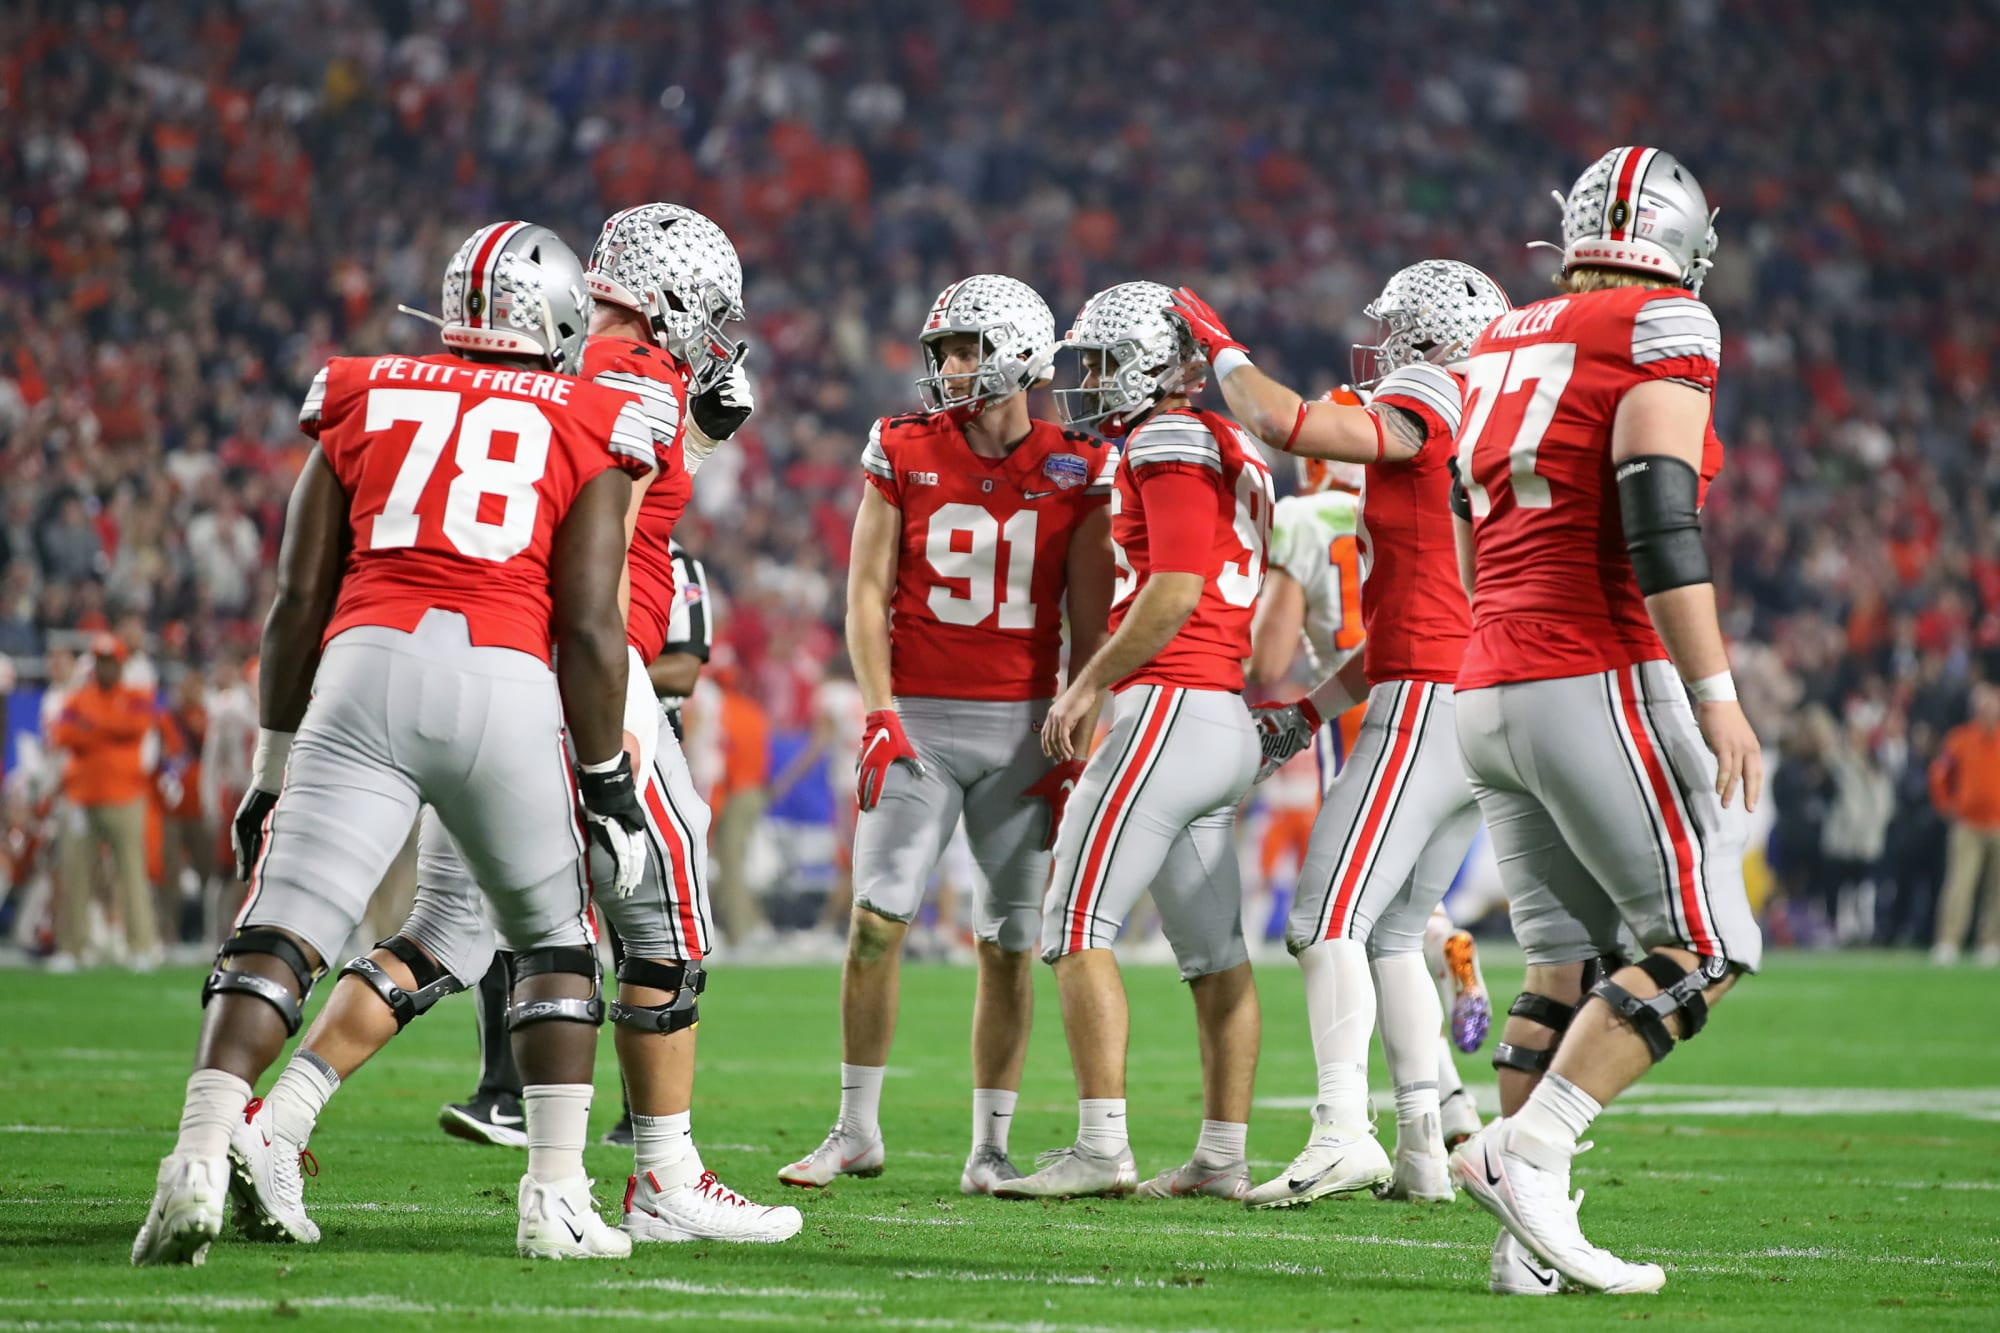 Ohio State football: 3 flaws keeping Buckeyes from the National Championship